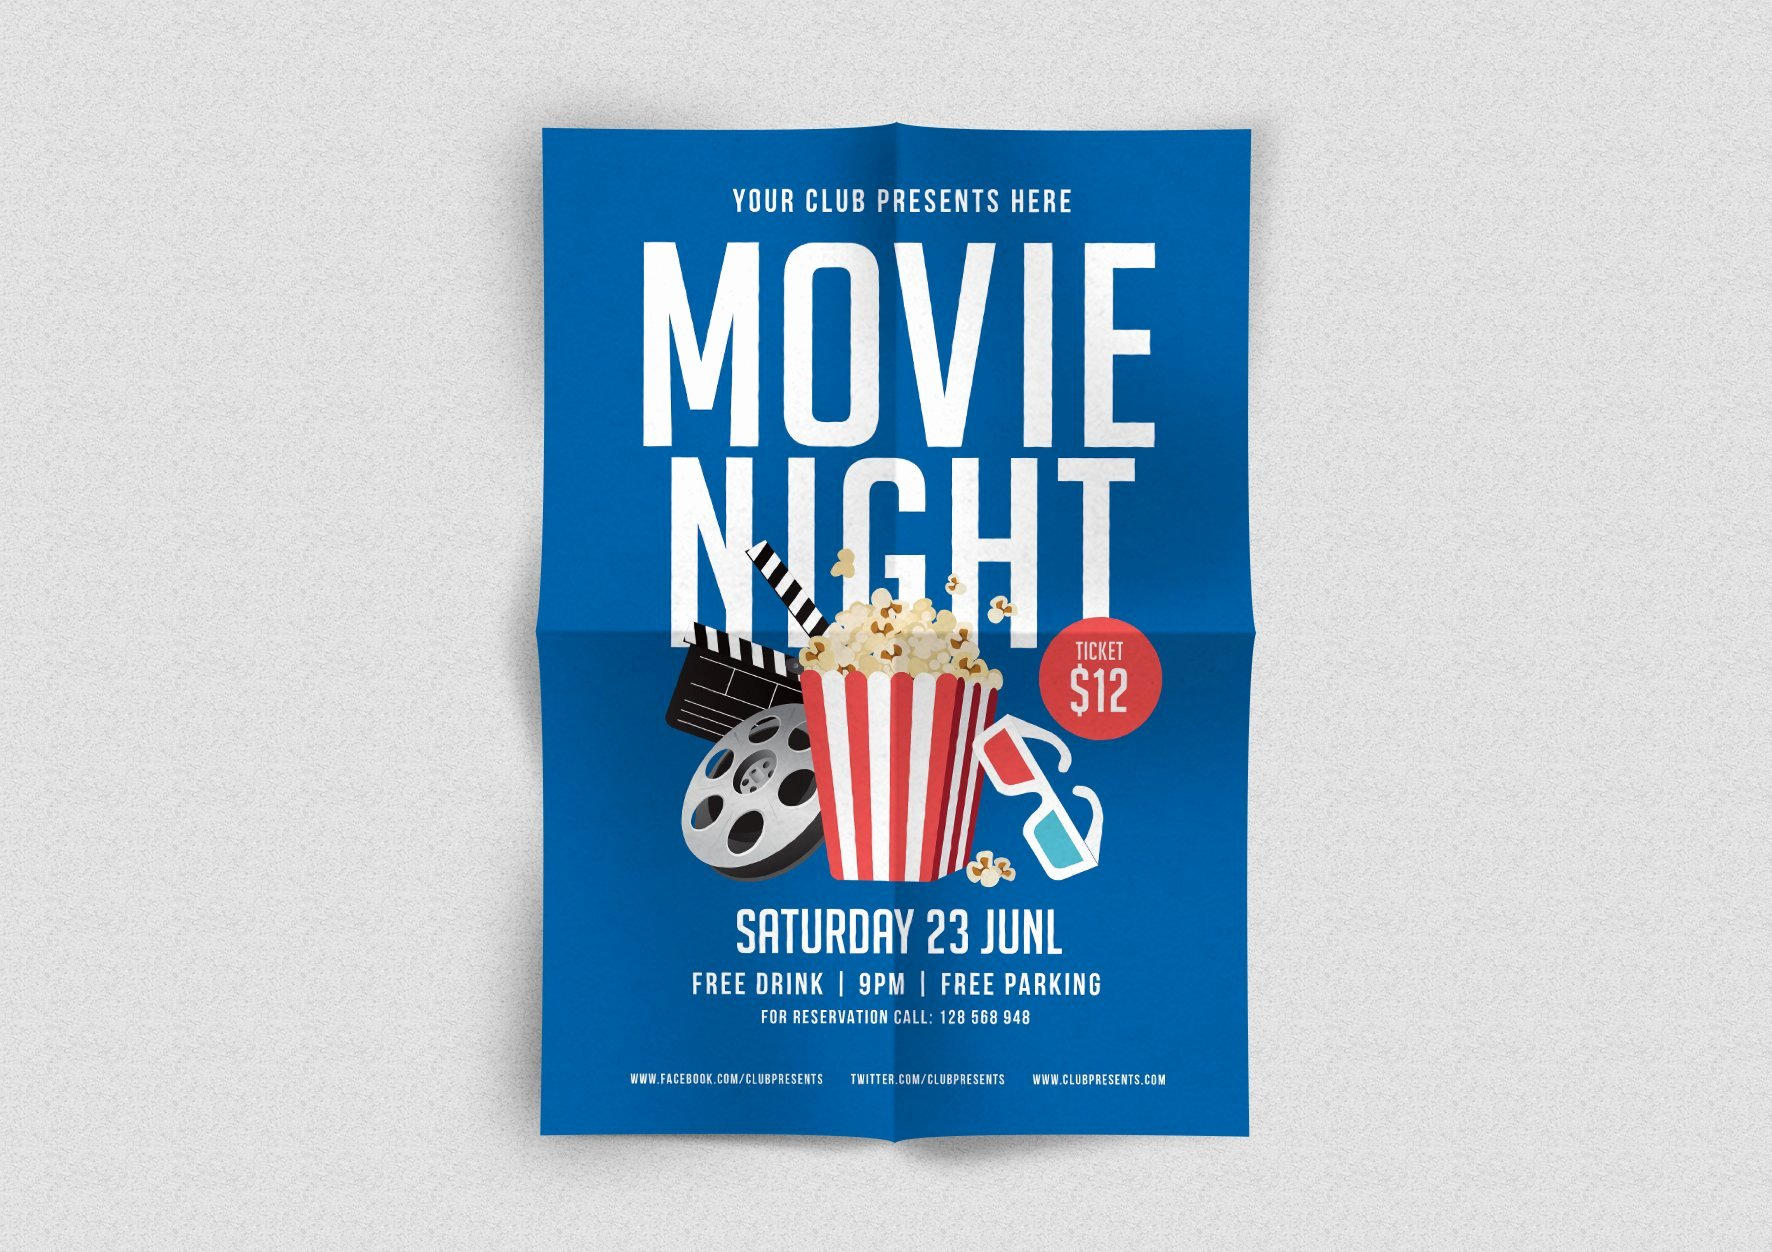 Free Movie Night Flyer Template Lovely Movie Night Flyer Flyer Templates Creative Market